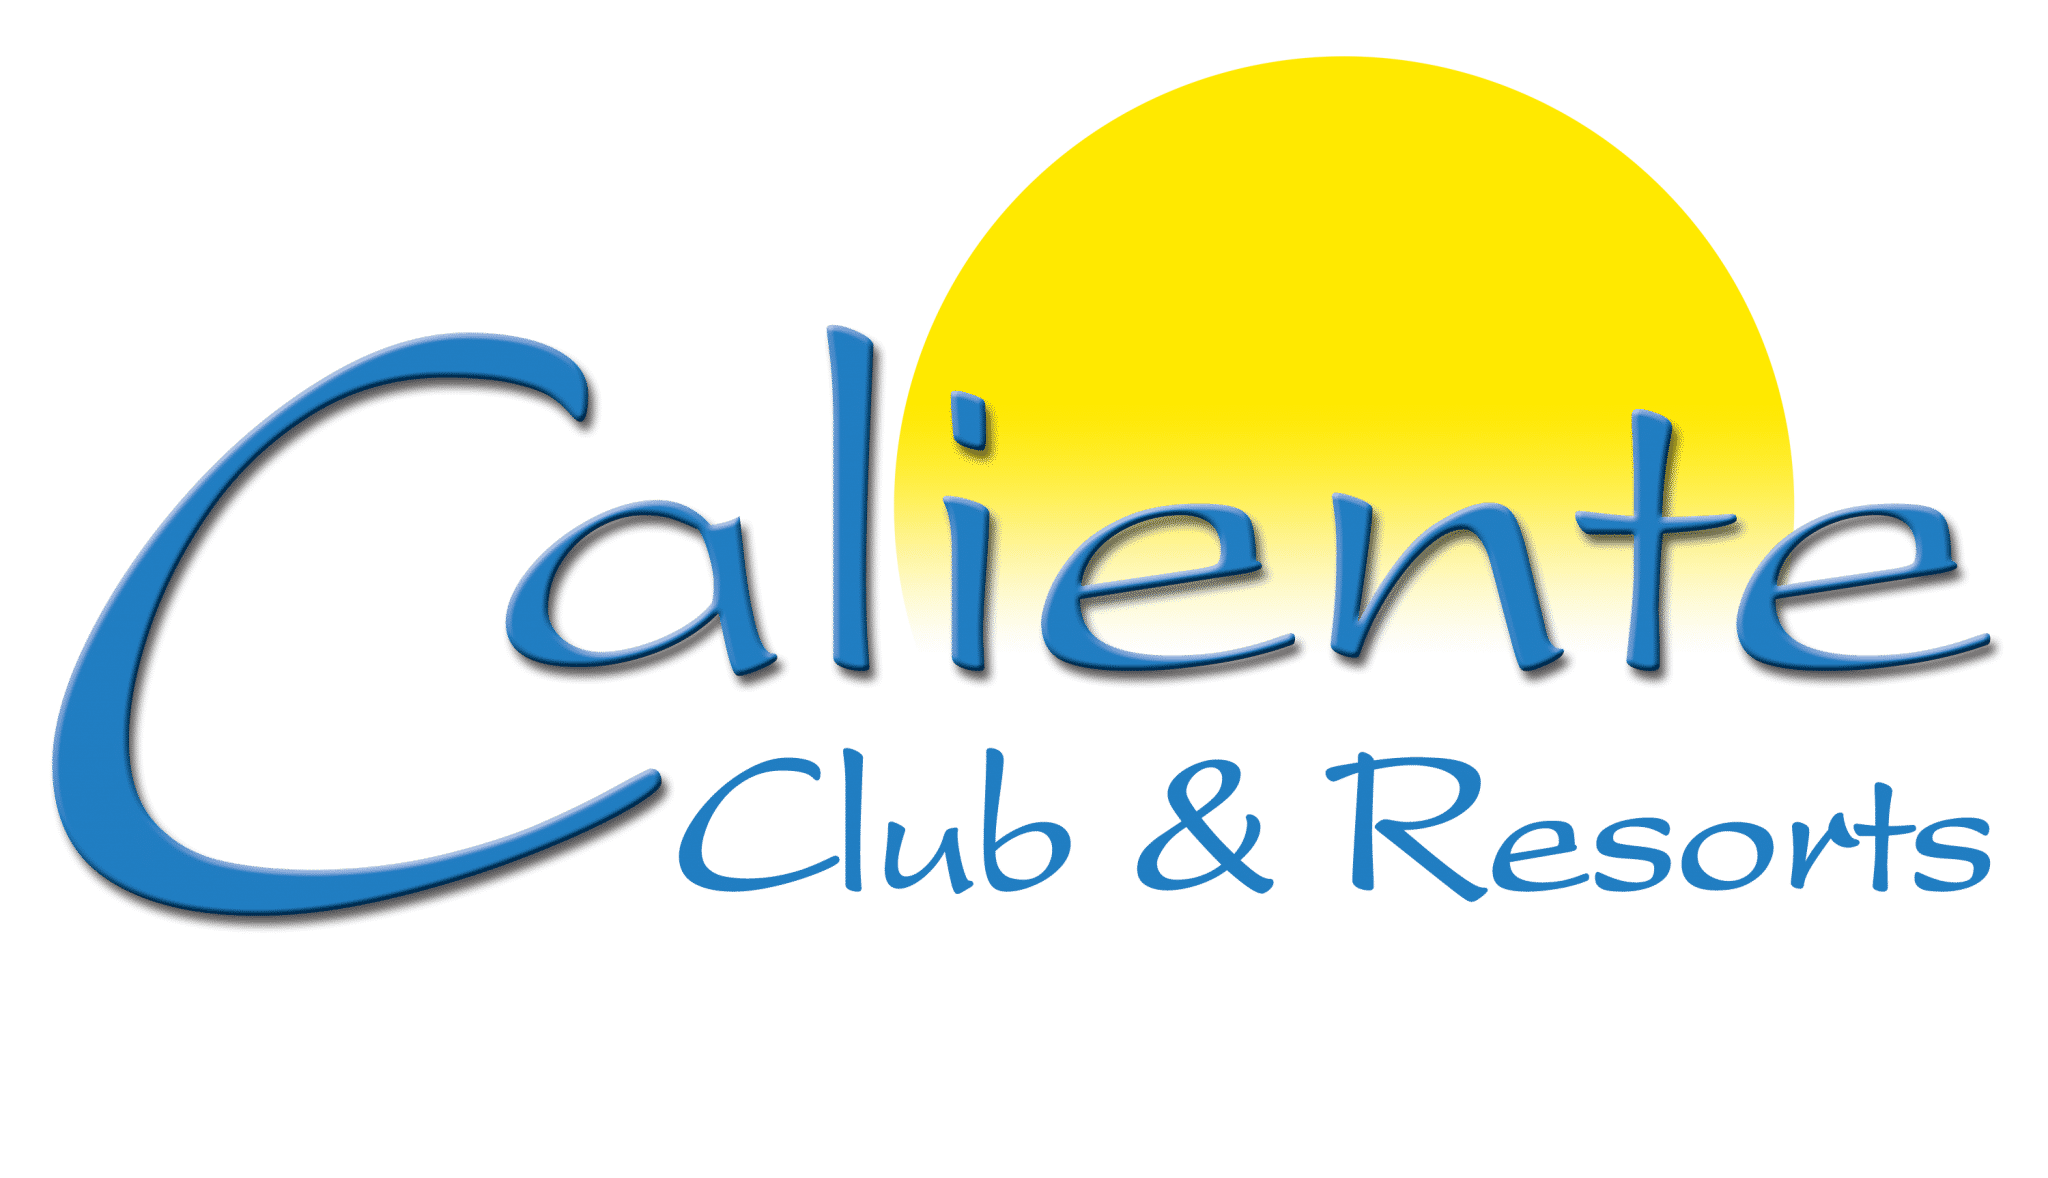 Caliente Resorts